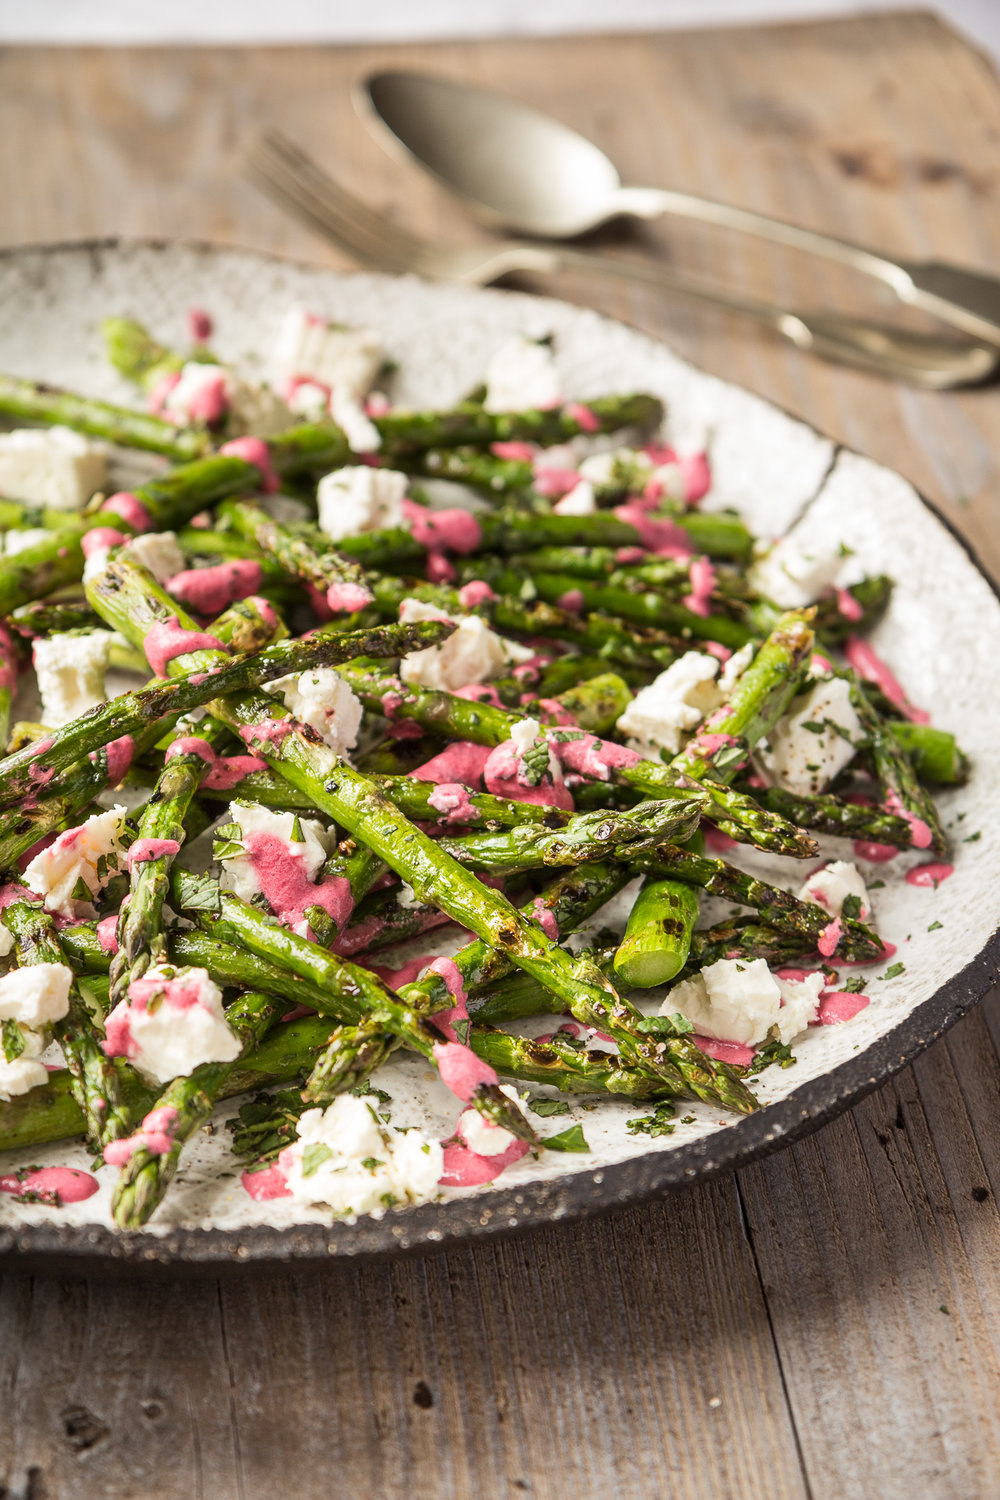 bbq asparagus with feta and beetroot dressing.jpg